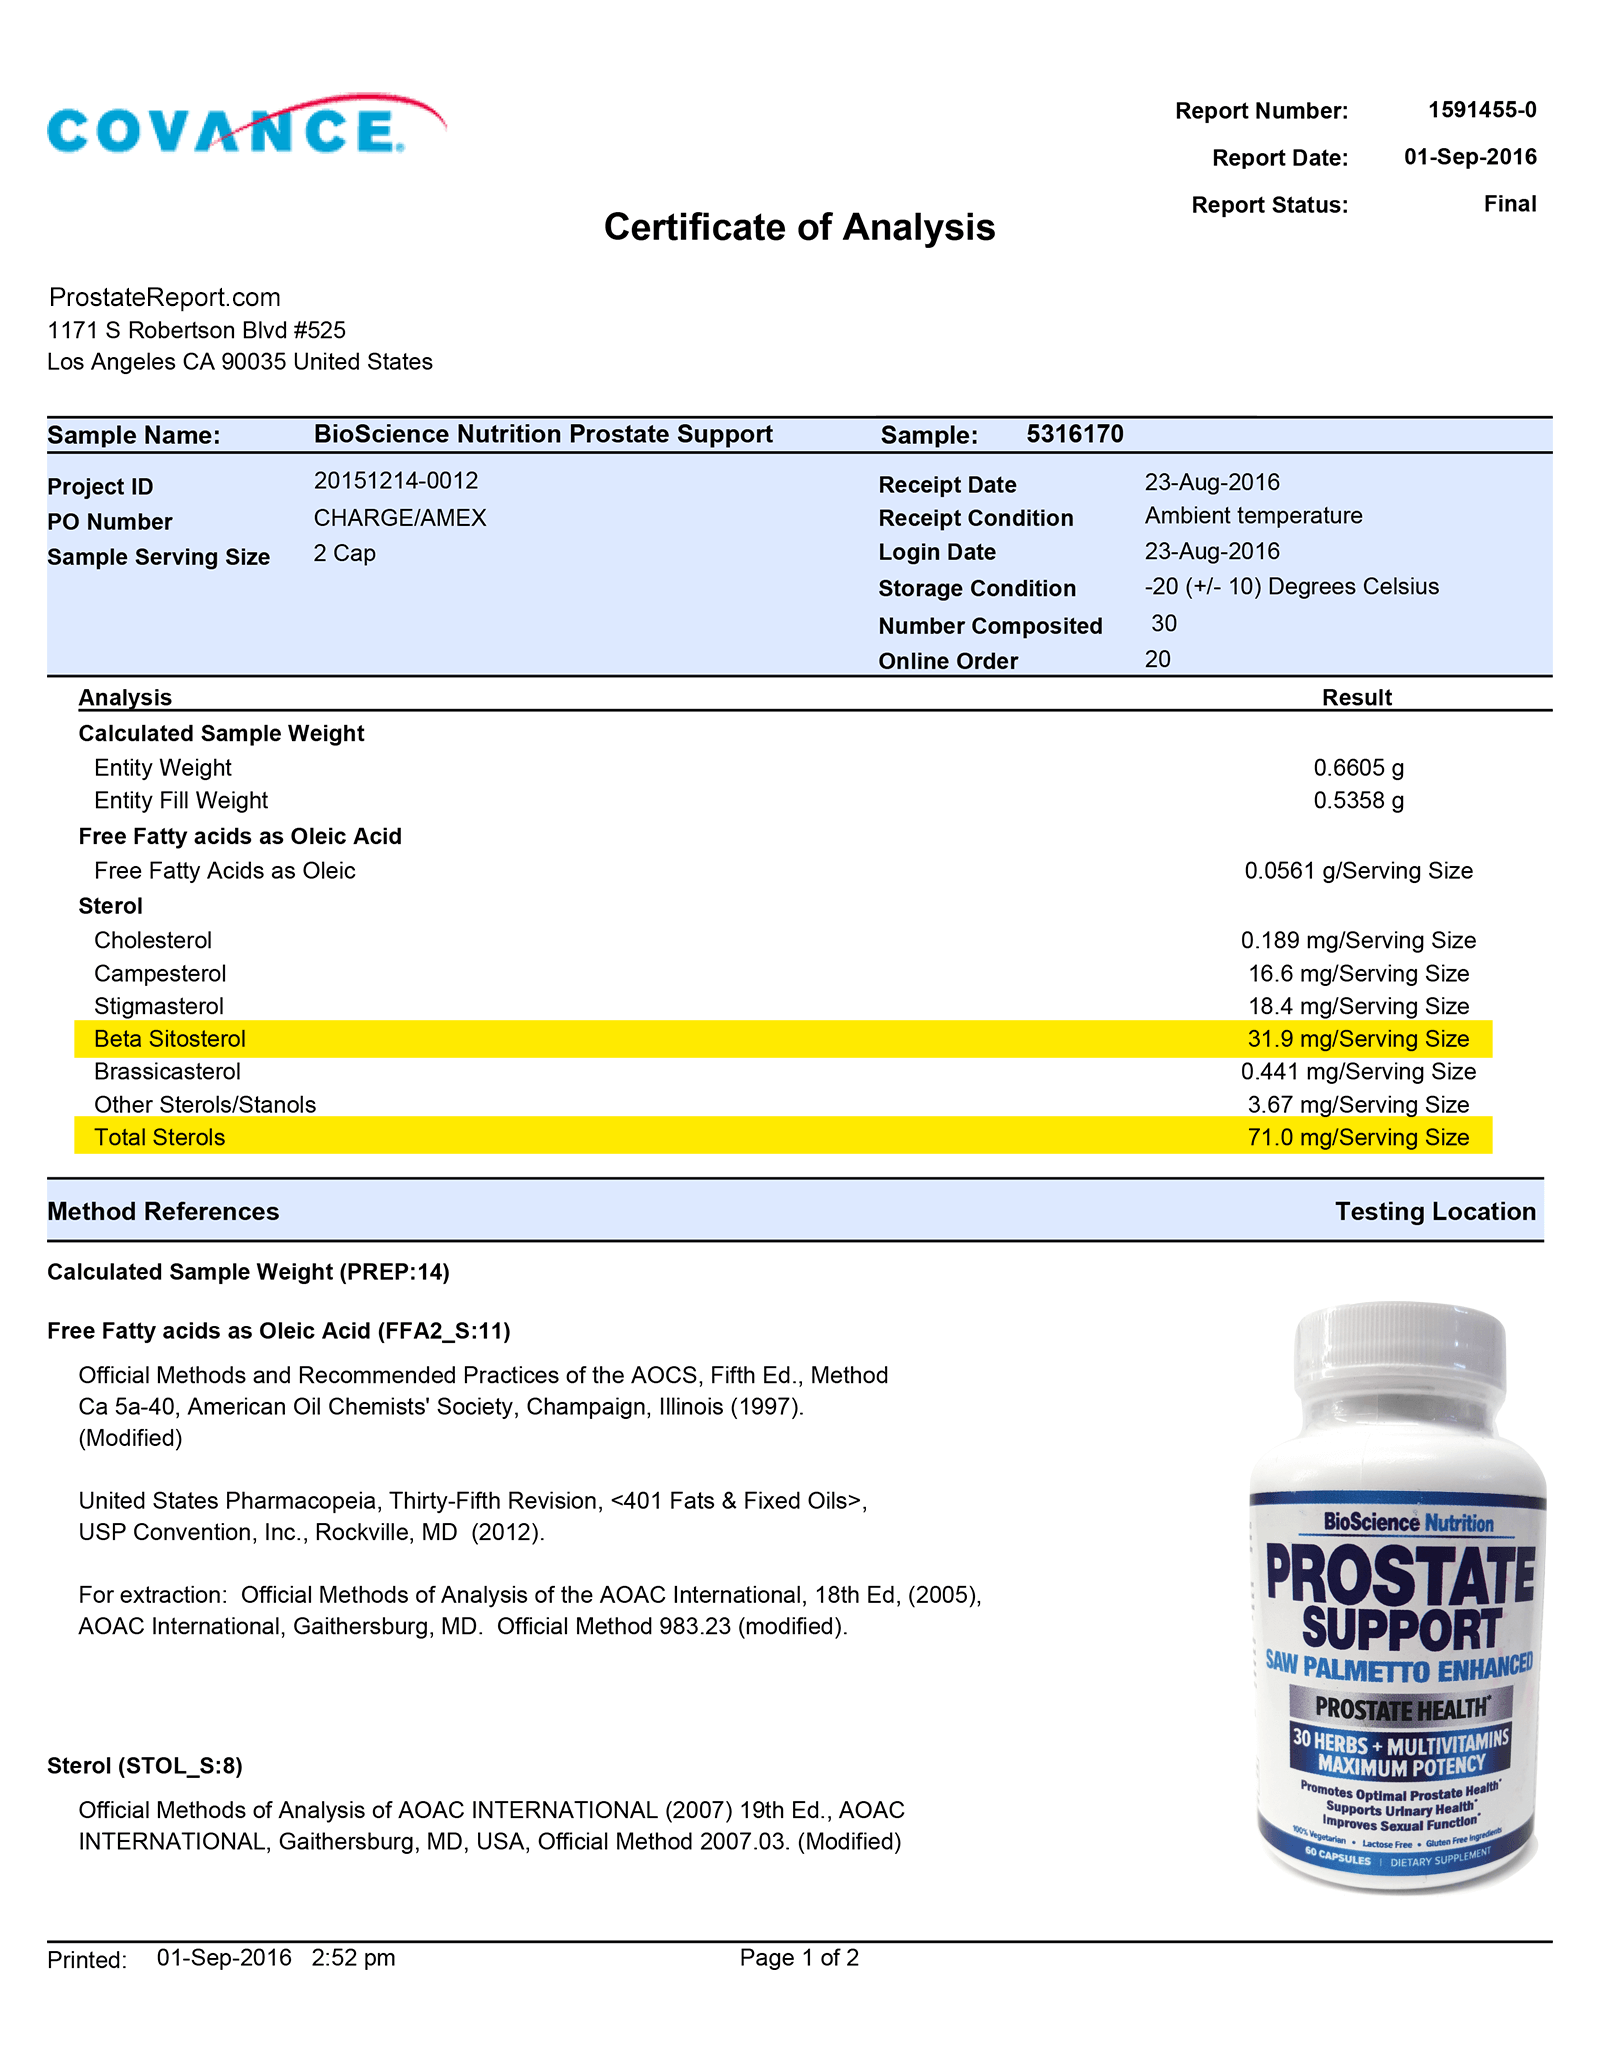 Prostate Support lab report